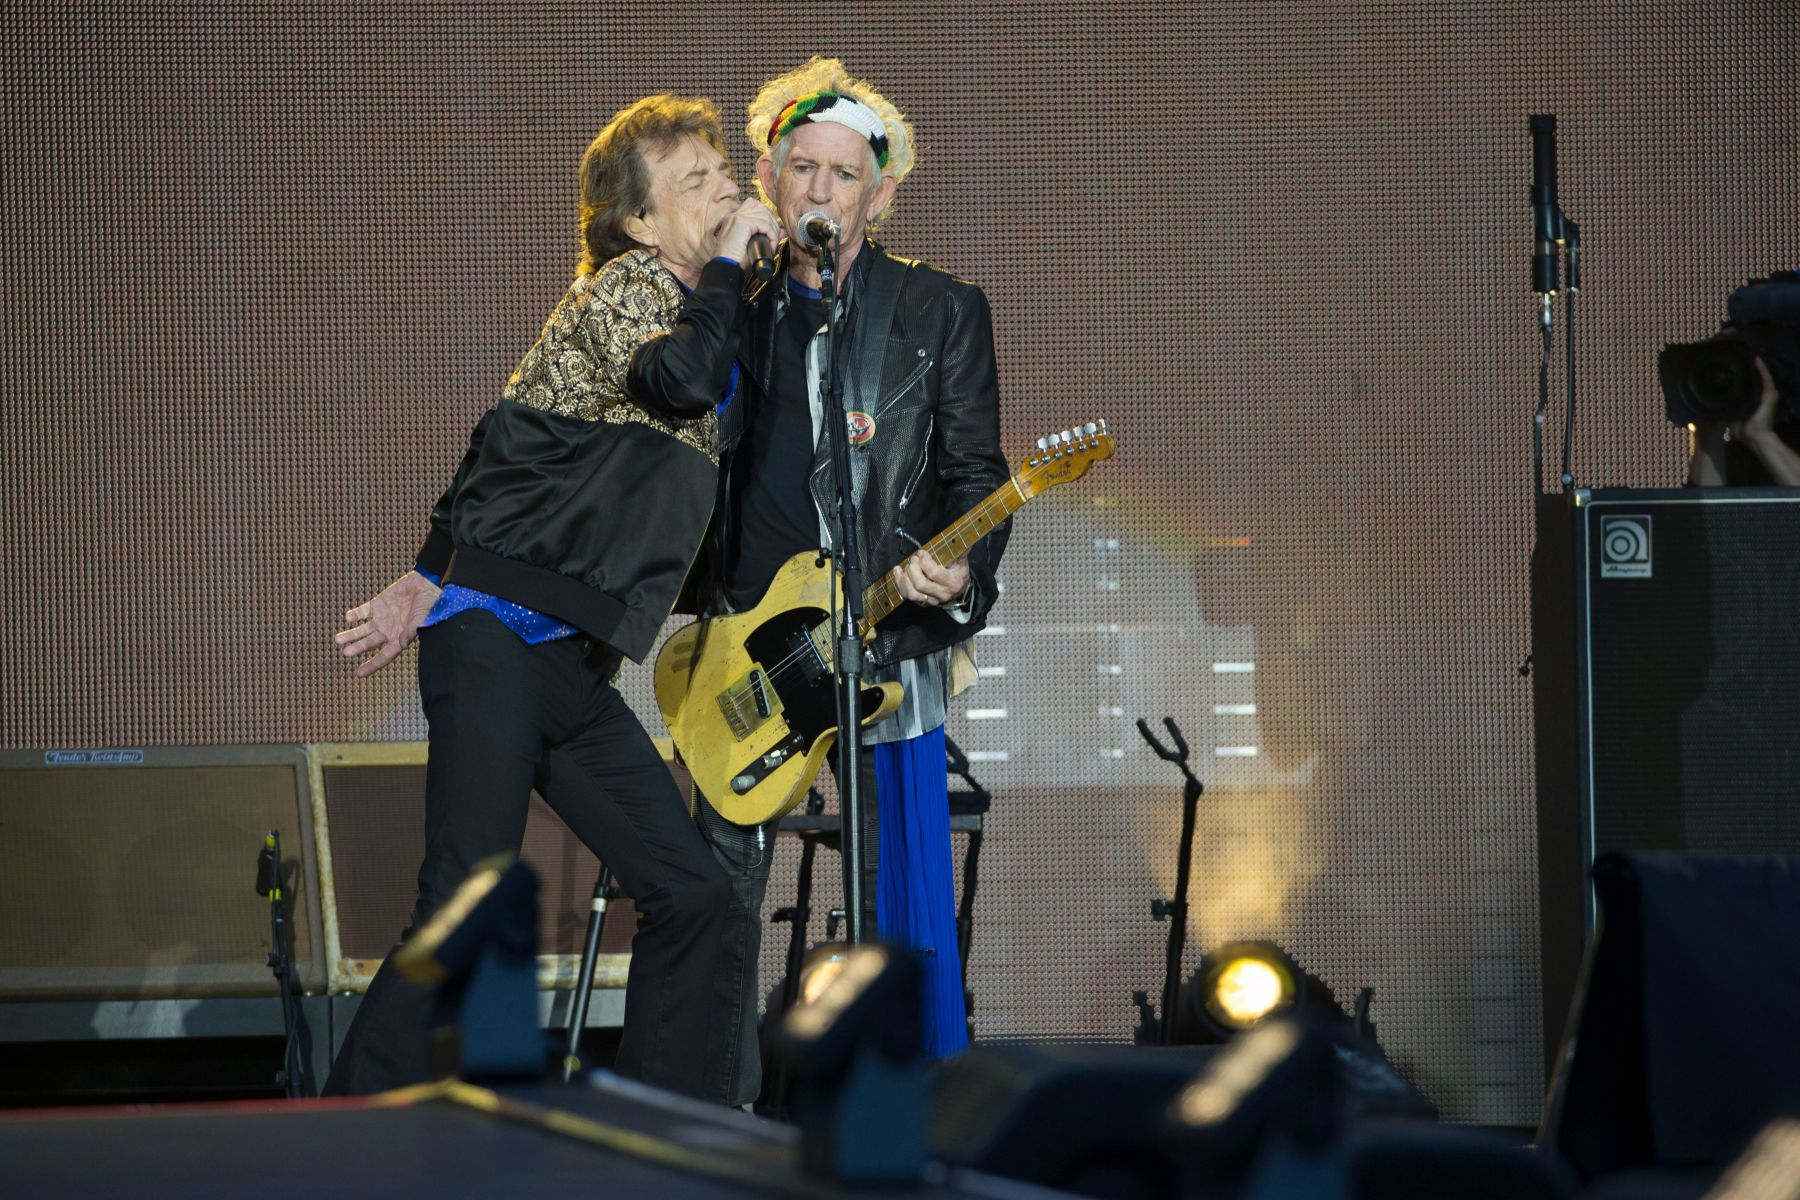 The Rolling Stones - Mick Jagger and Keith RichardsThe Rolling Stones in concert at Murrayfield Stadium, Edinburgh, Scotland, UK - 9th June 2018